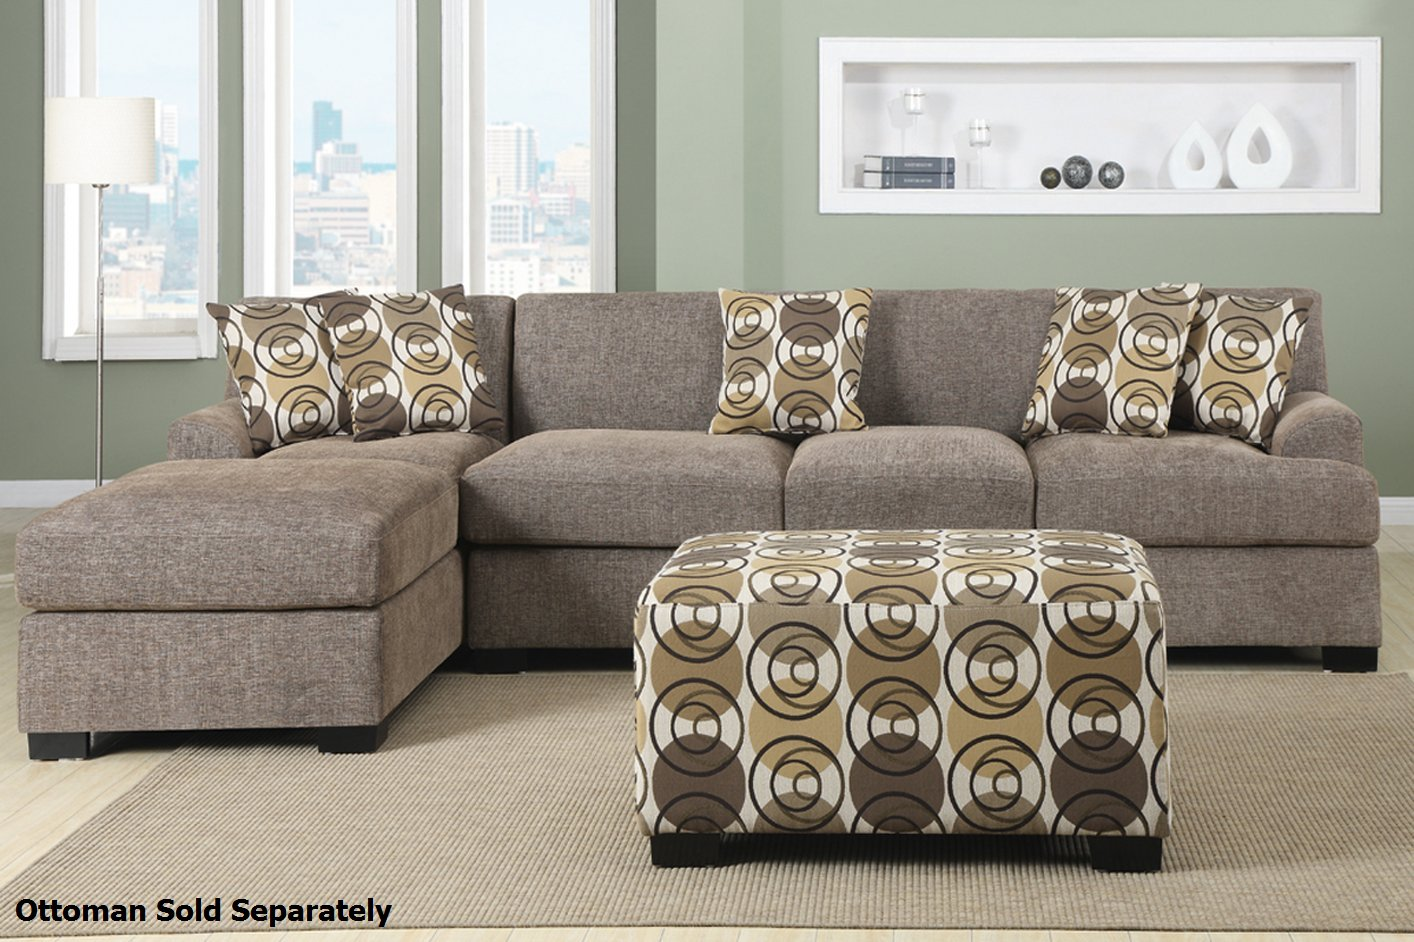 montreal sectional sofa small l shaped sofas poundex iii f7448 f7450 beige fabric